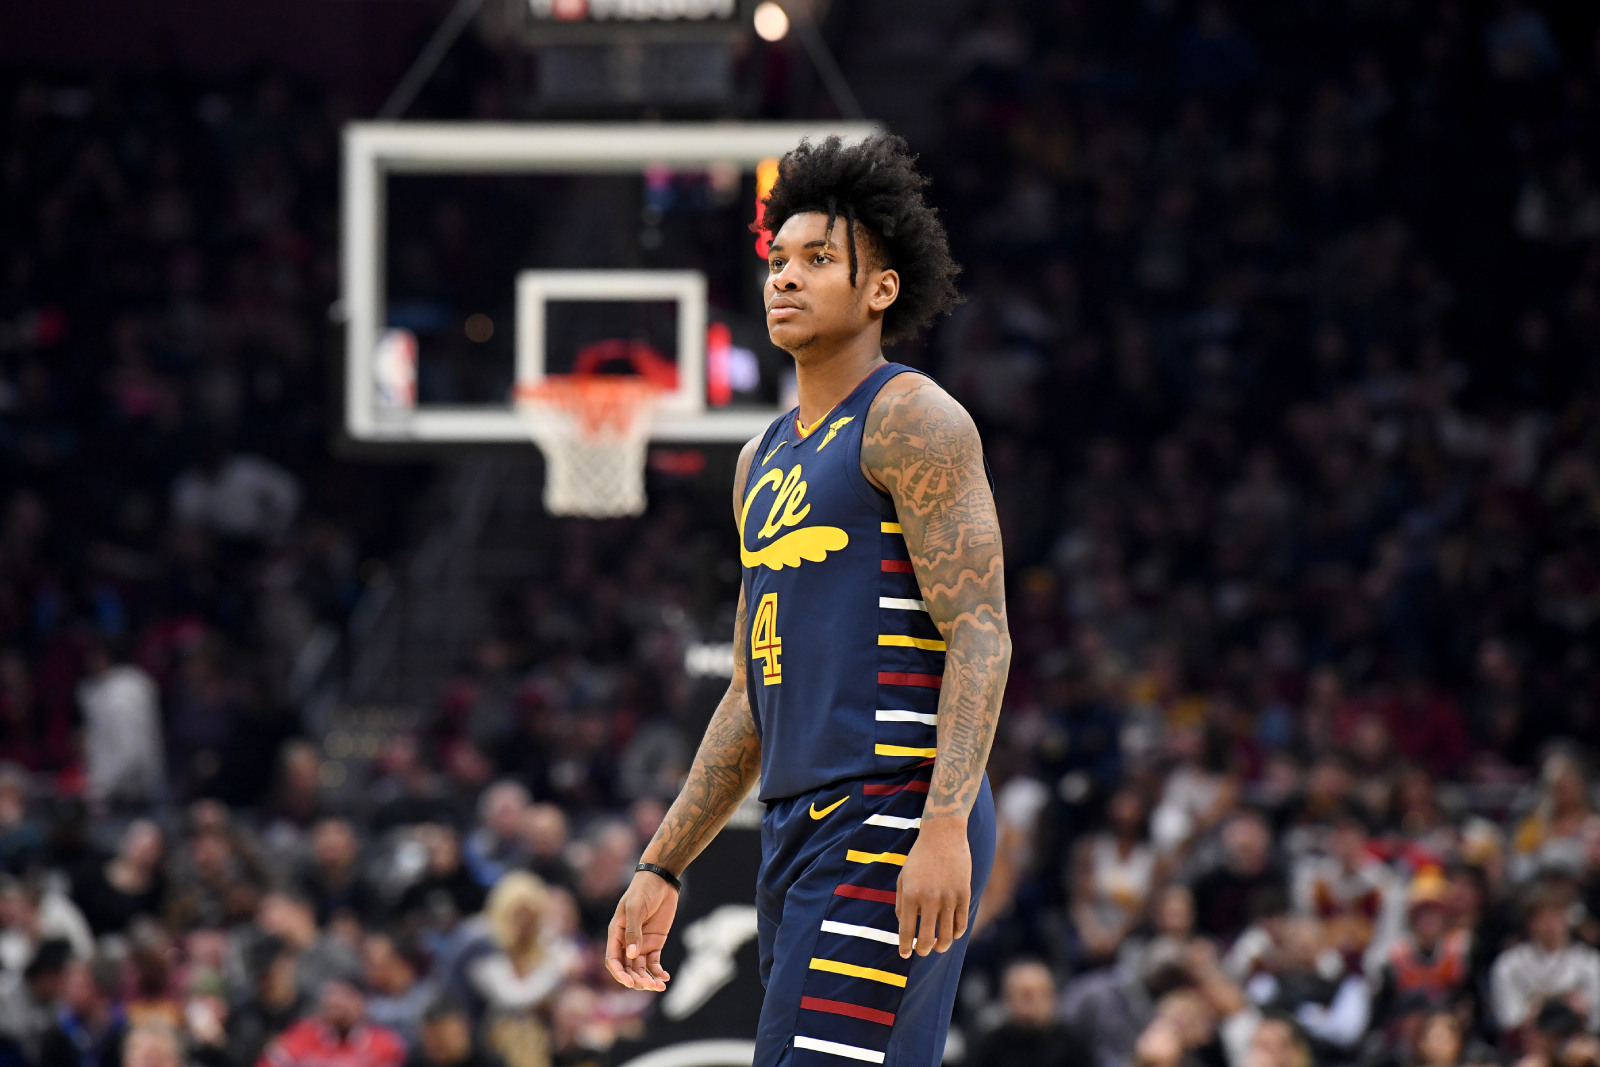 Kevin Porter Jr. showed glimpses of his unreal potential for the Cleveland Cavaliers last season. However, he could now be in some trouble.